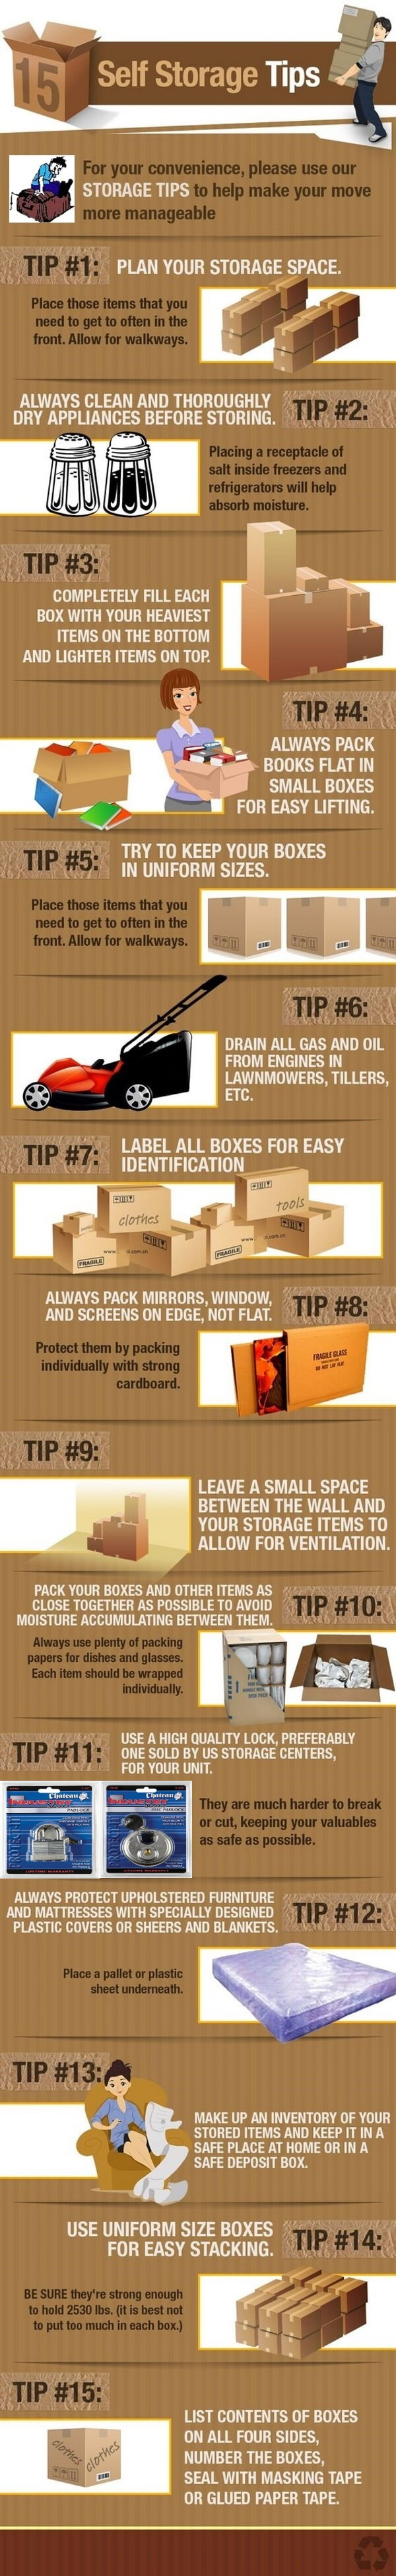 Storage unit packing tips infographic